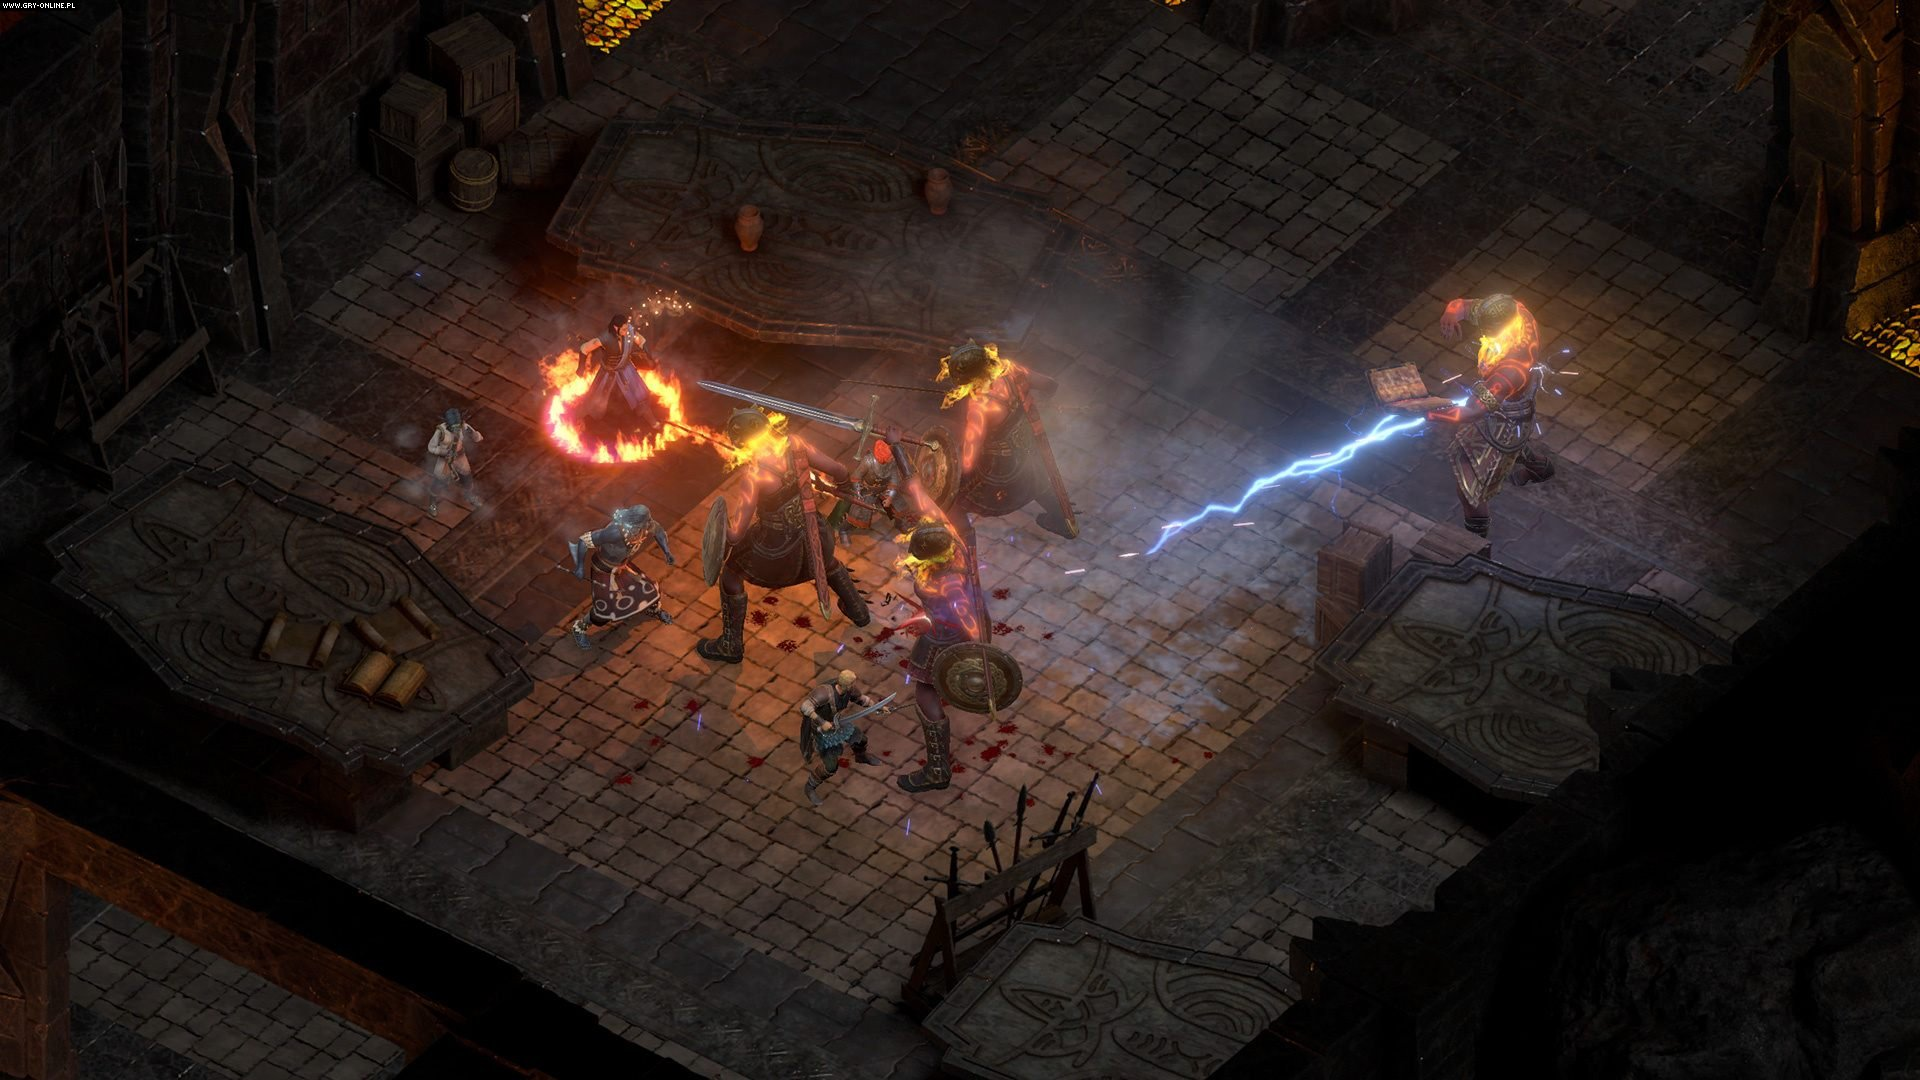 Pillars of Eternity II: Deadfire PC, PS4, XONE, Switch Gry Screen 17/27, Obsidian Entertainment, Versus Evil